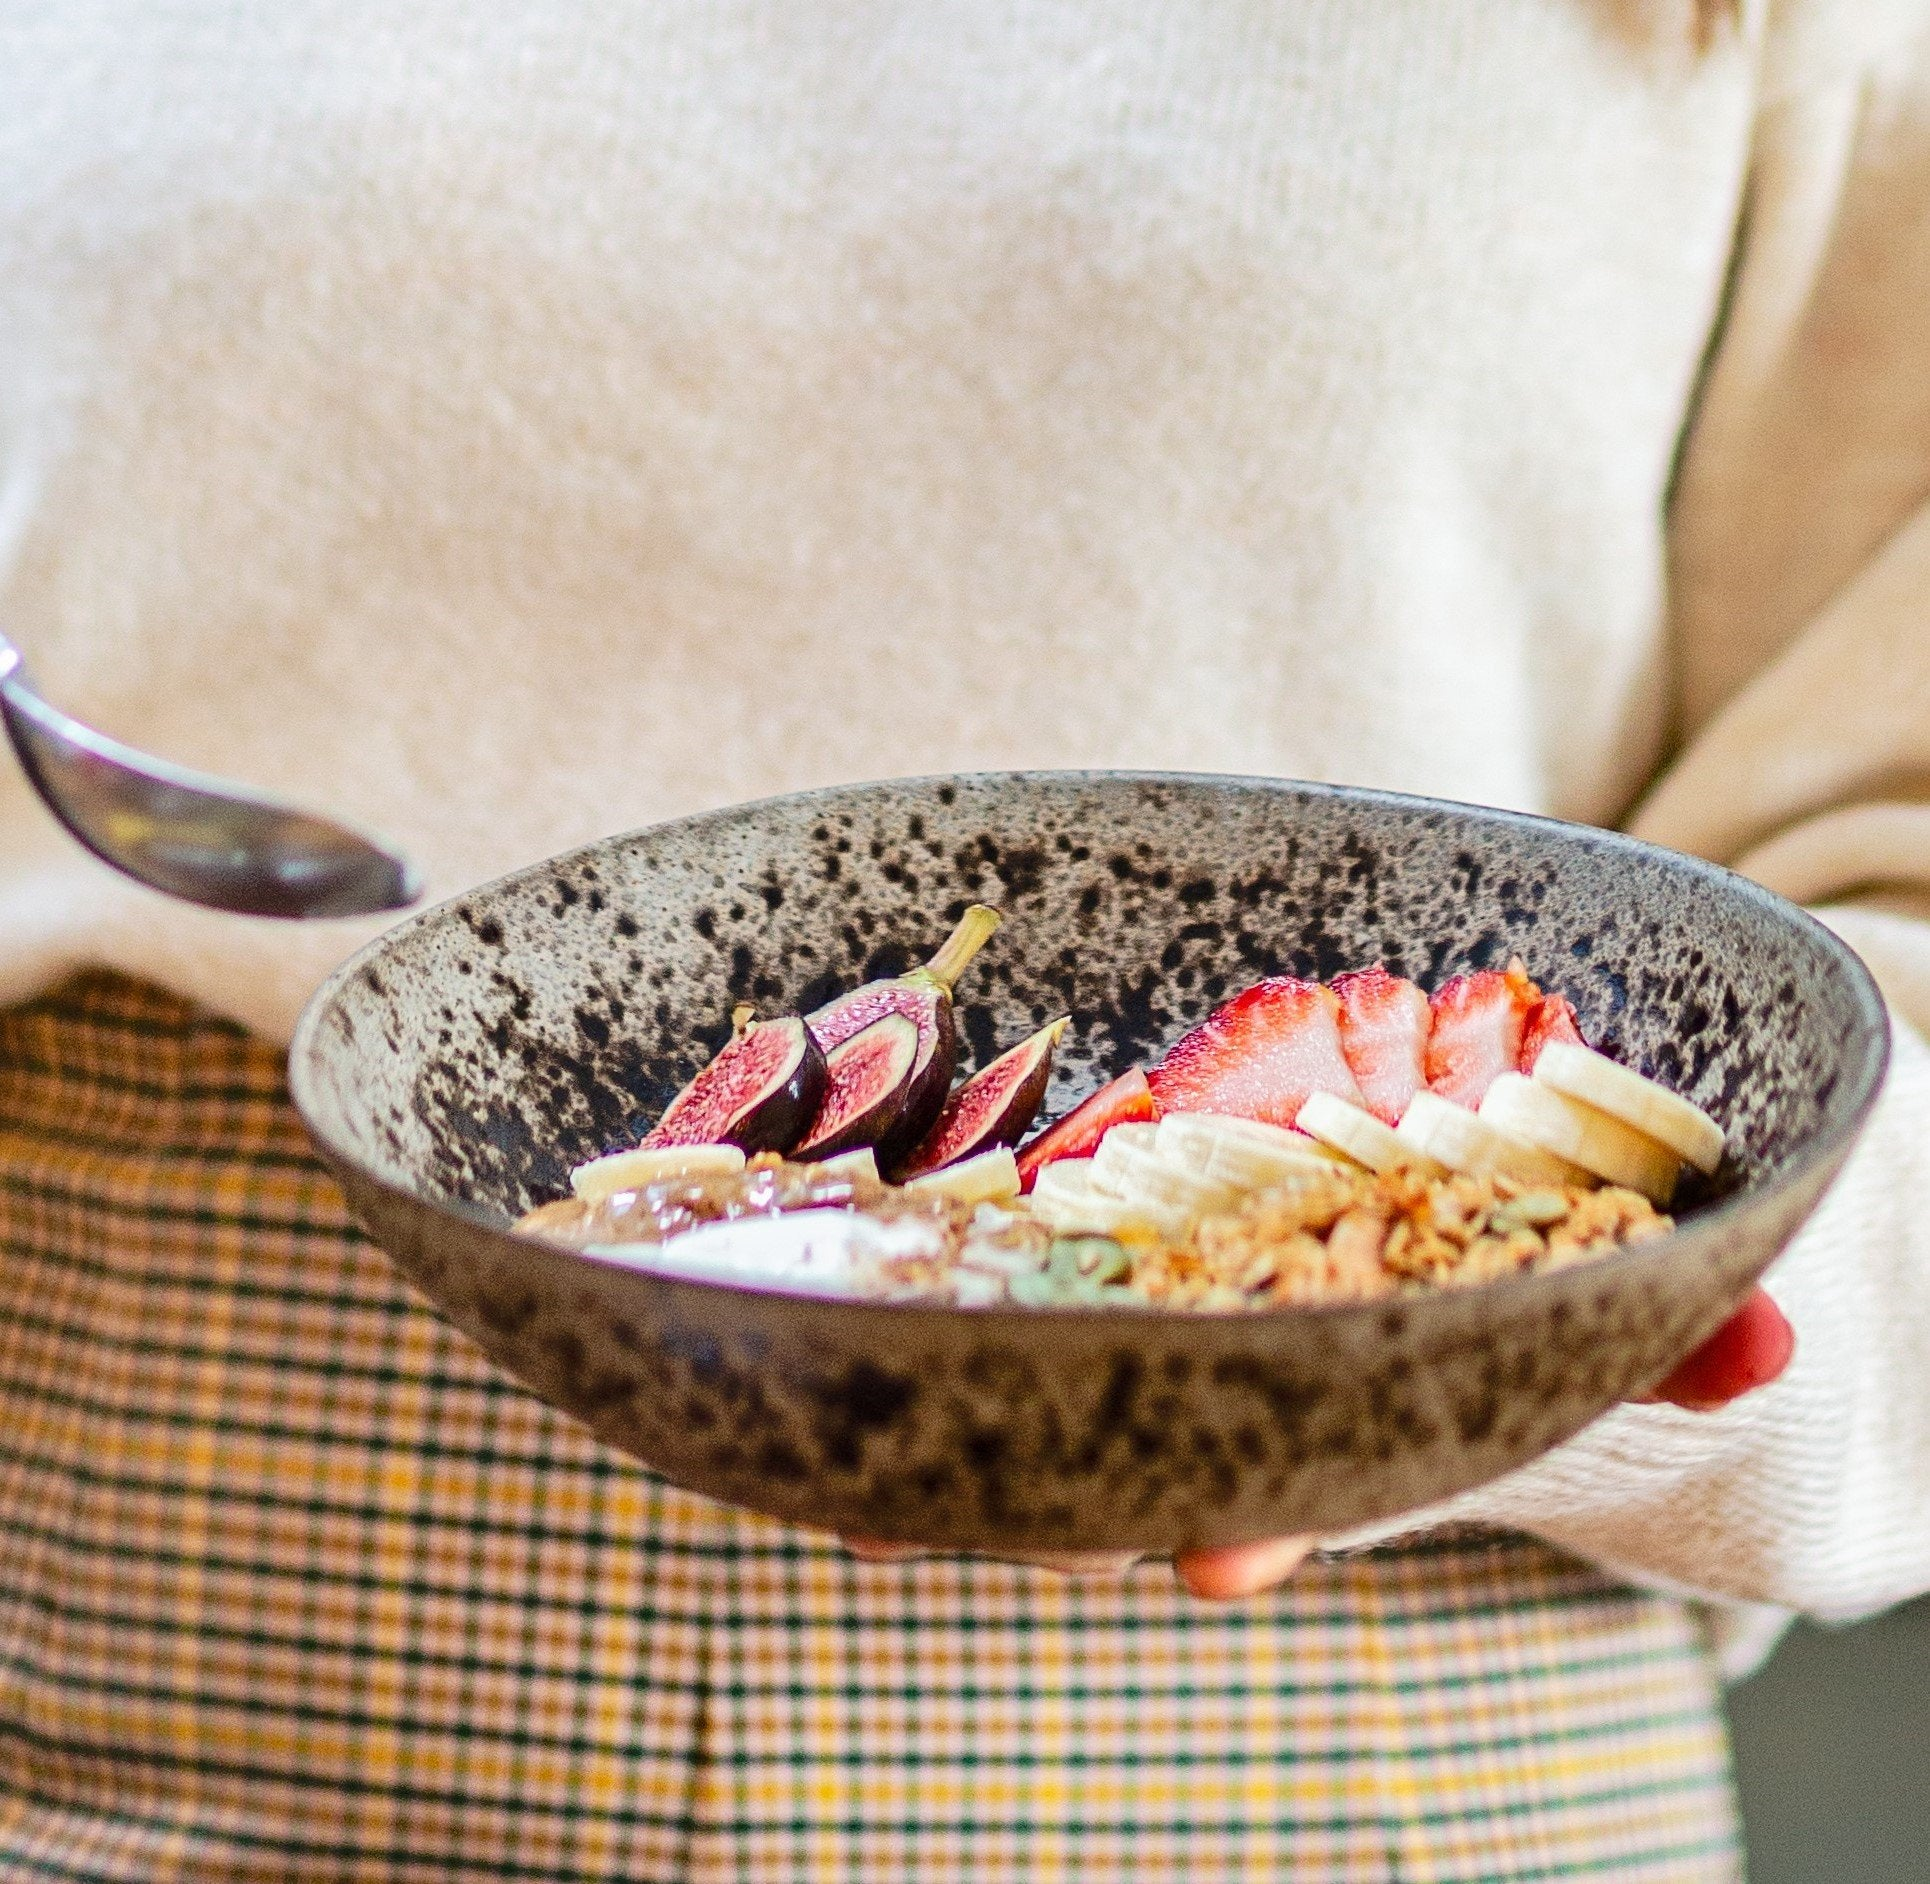 Homemade Granola - The Garden Eatery